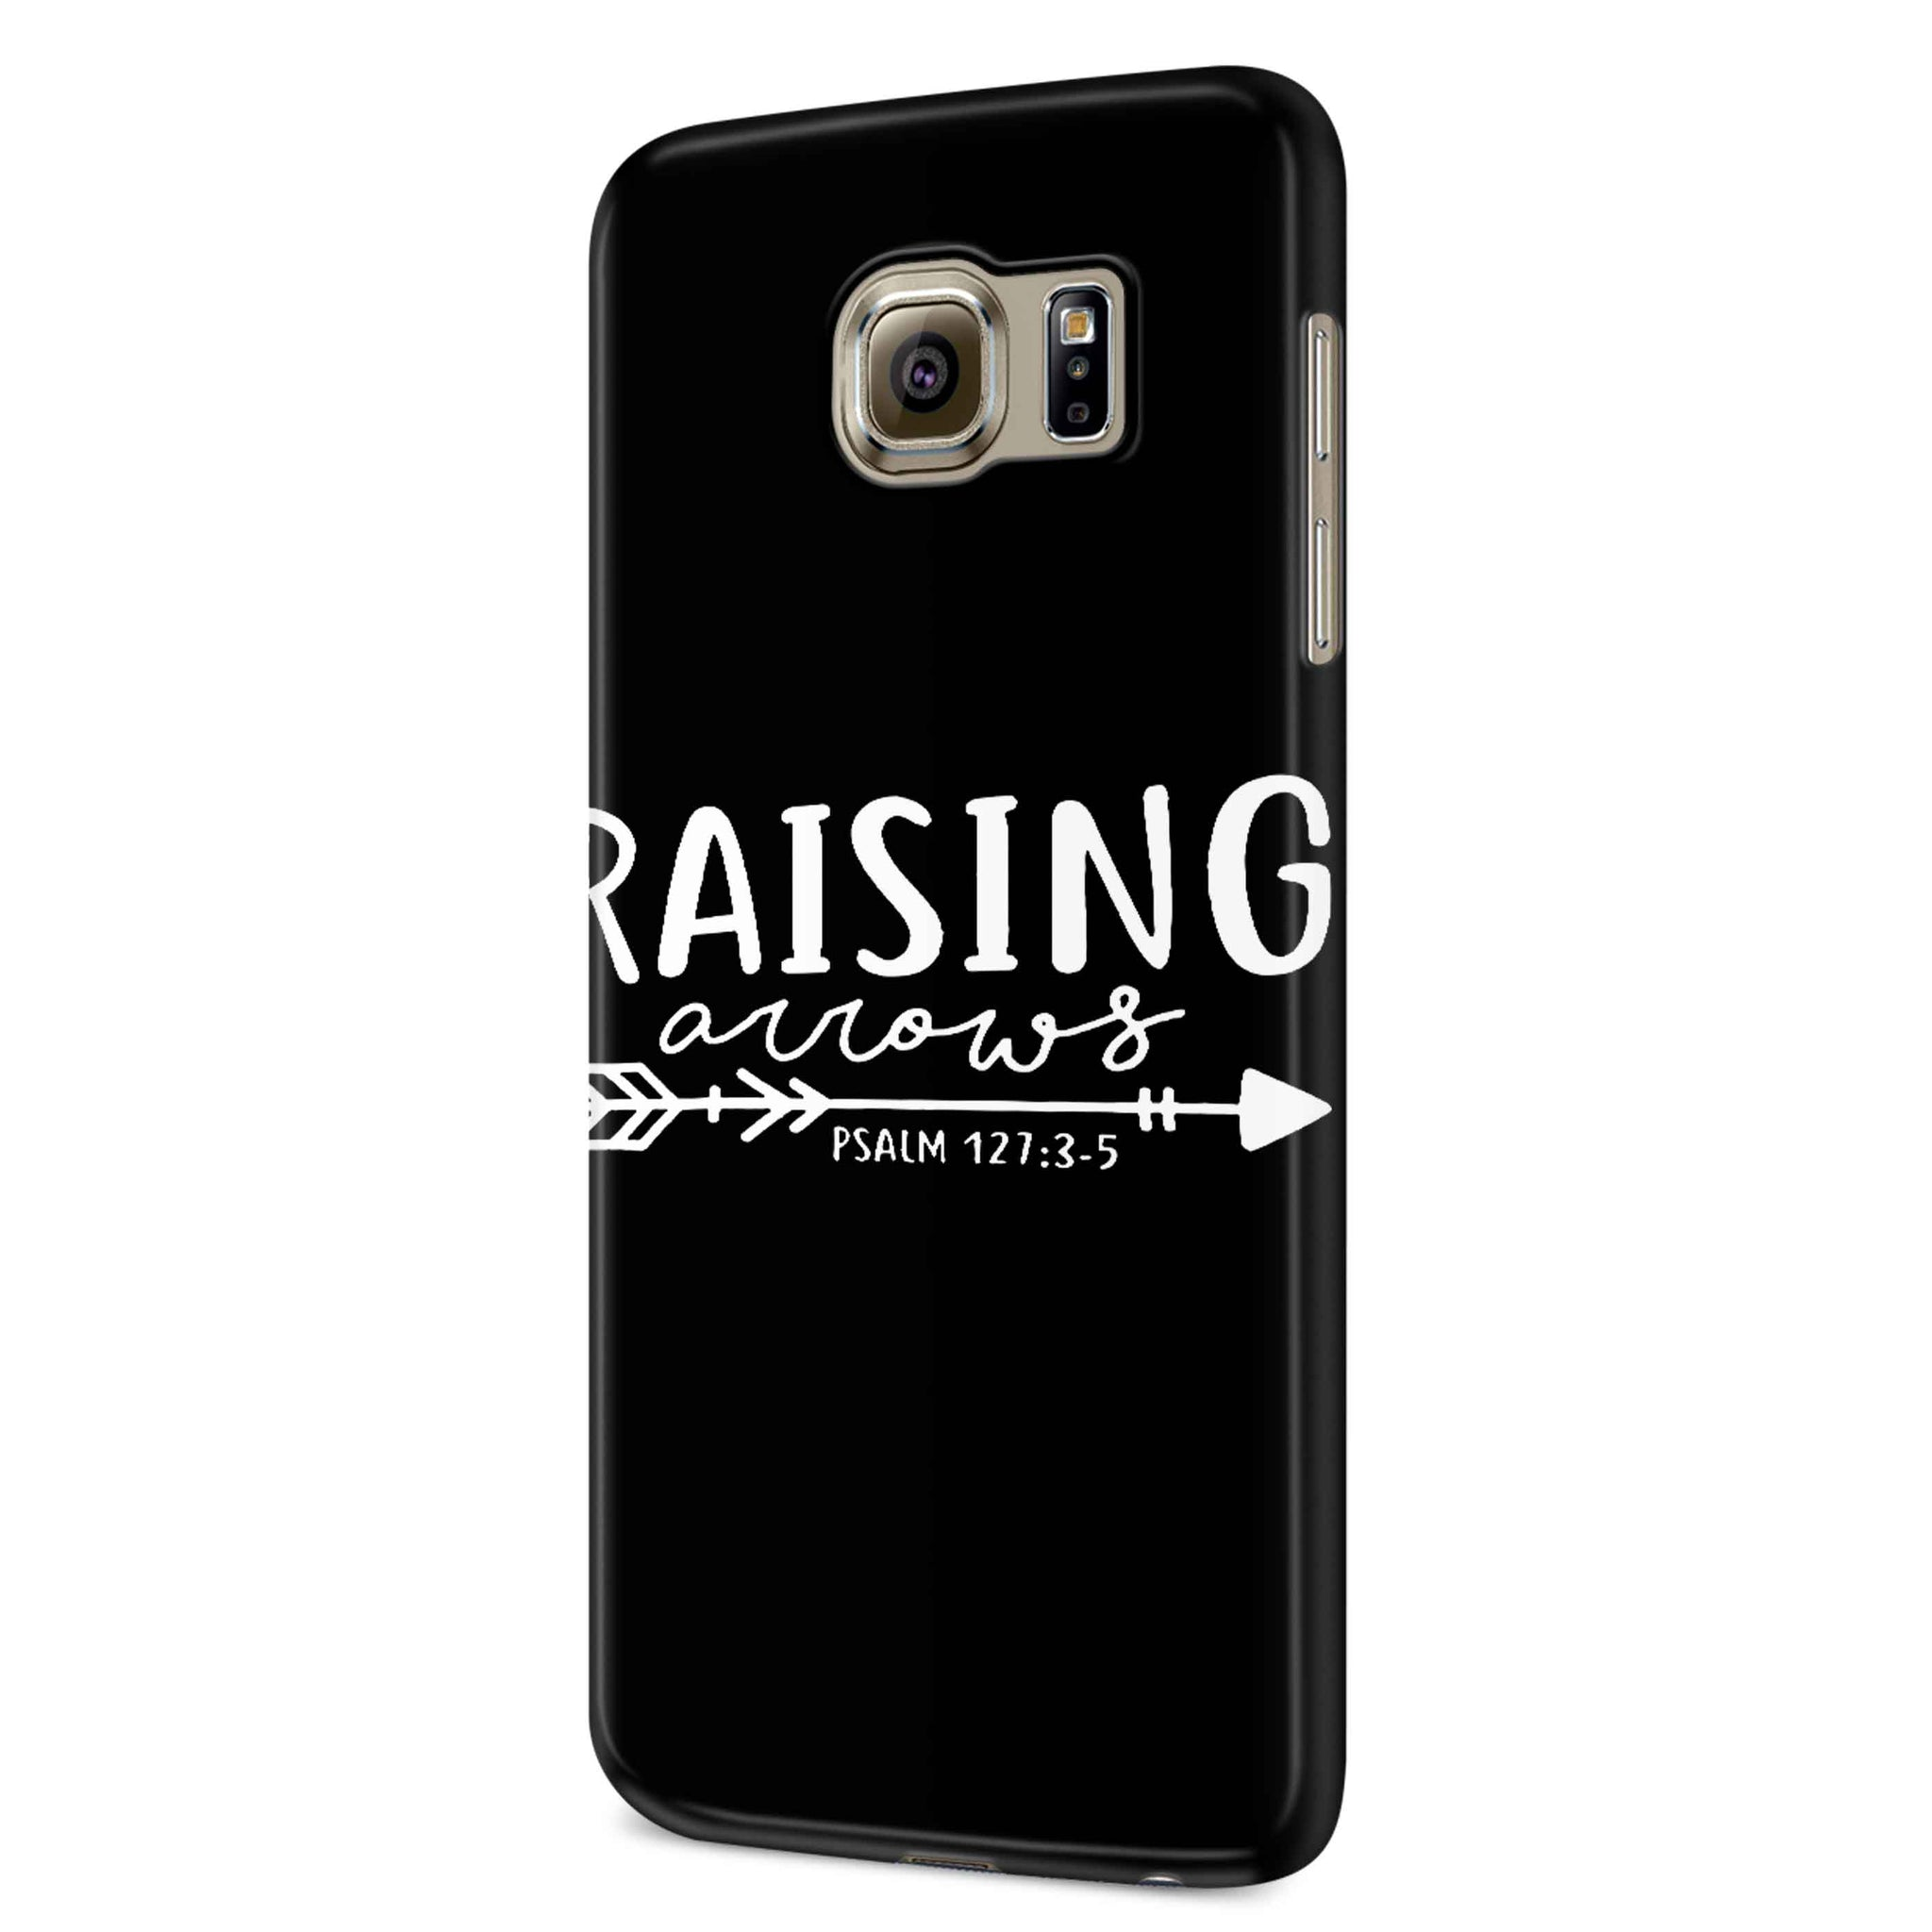 Raising Arrows Psalm 127-3-5 Samsung Galaxy S6 S6 Edge Plus/ S7 S7 Edge / S8 S8 Plus / S9 S9 plus 3D Case